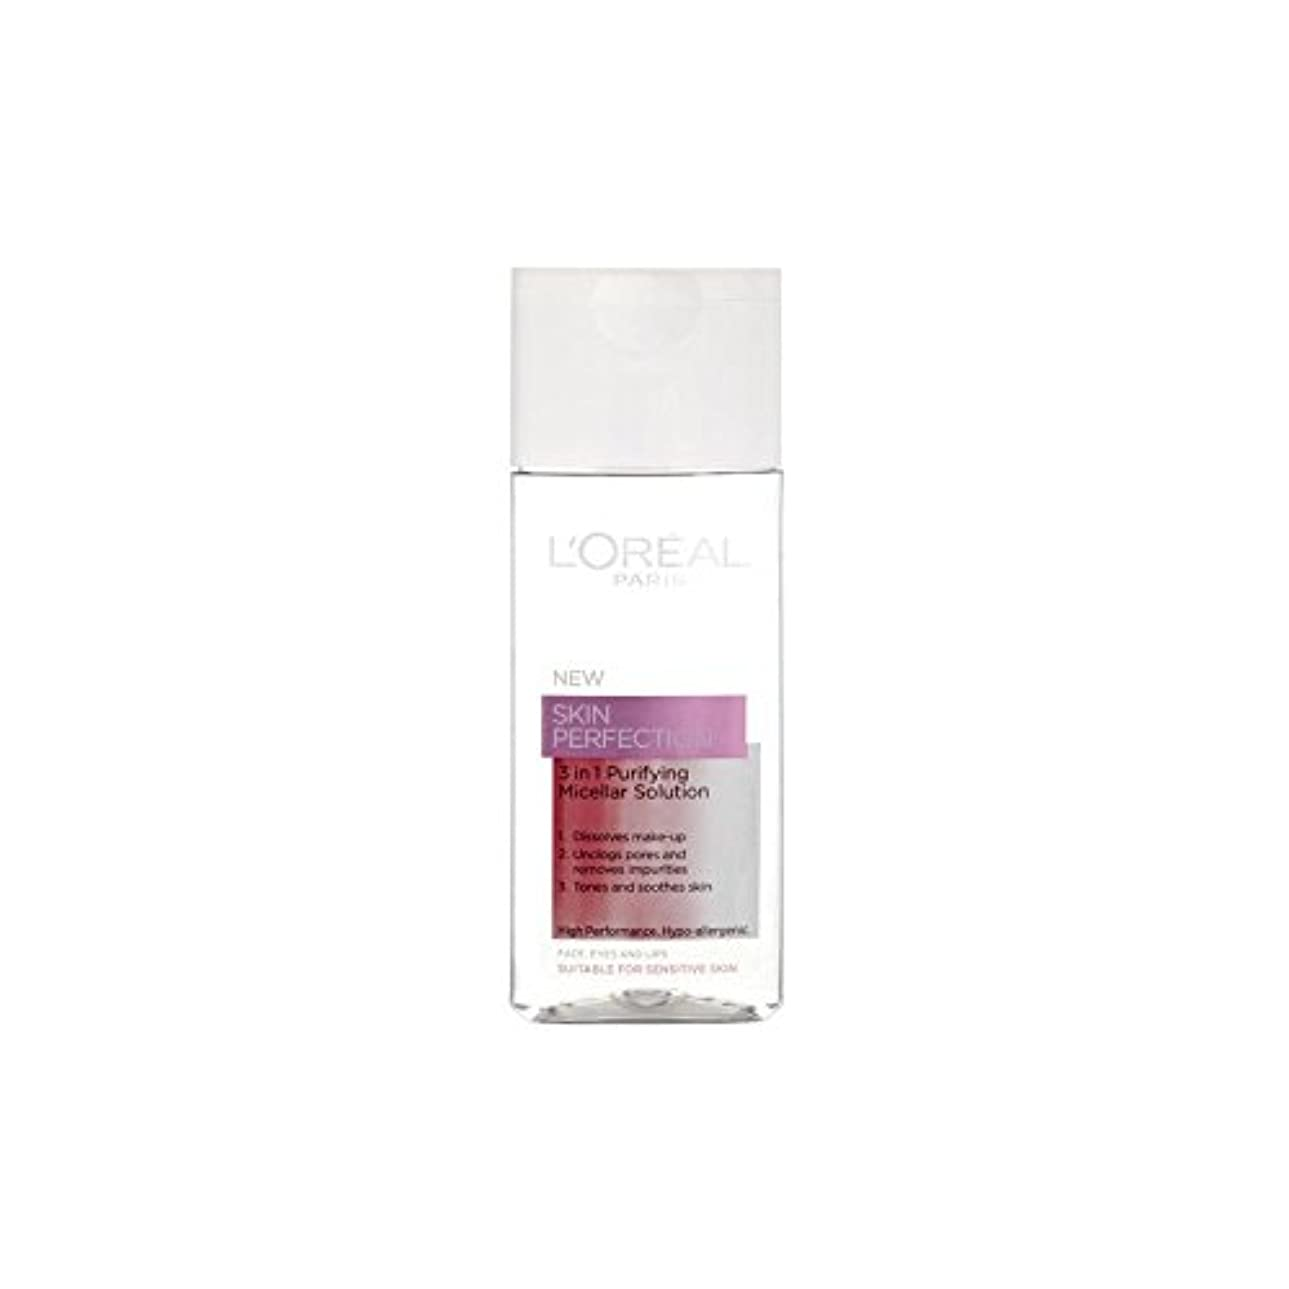 流行ジャンプ生L'Oreal Paris Dermo Expertise Skin Perfection 3 In 1 Purifying Micellar Solution (200ml) (Pack of 6) - 1つの精製ミセル...